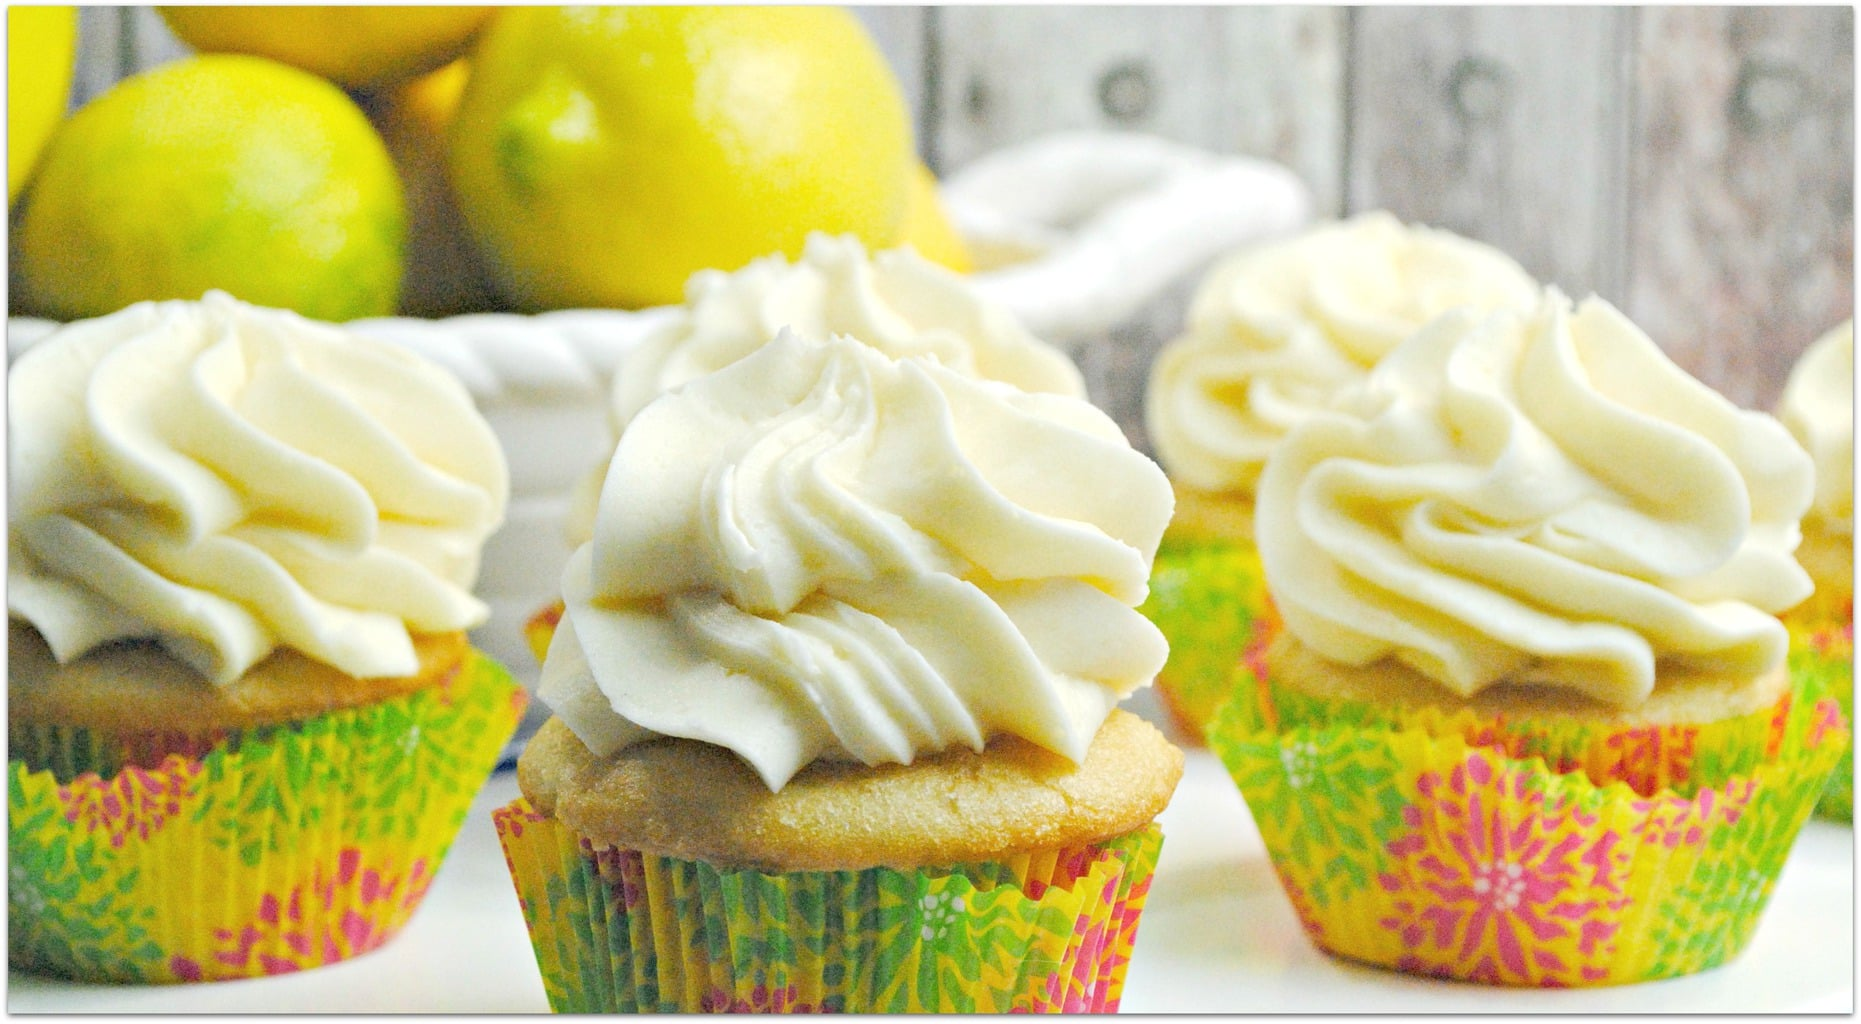 There is something about these Lemon Chiffon Cupcakes that I cannot resist. I don't know if it's the light and airy cream cheese frosting, the soft moist cupcake, or the slightly sweet lemony deliciousness, but I could eat one after every meal. This recipe is so easy, so don't go buy when you can DIY. Head to the kitchen and whip these up for your next gathering